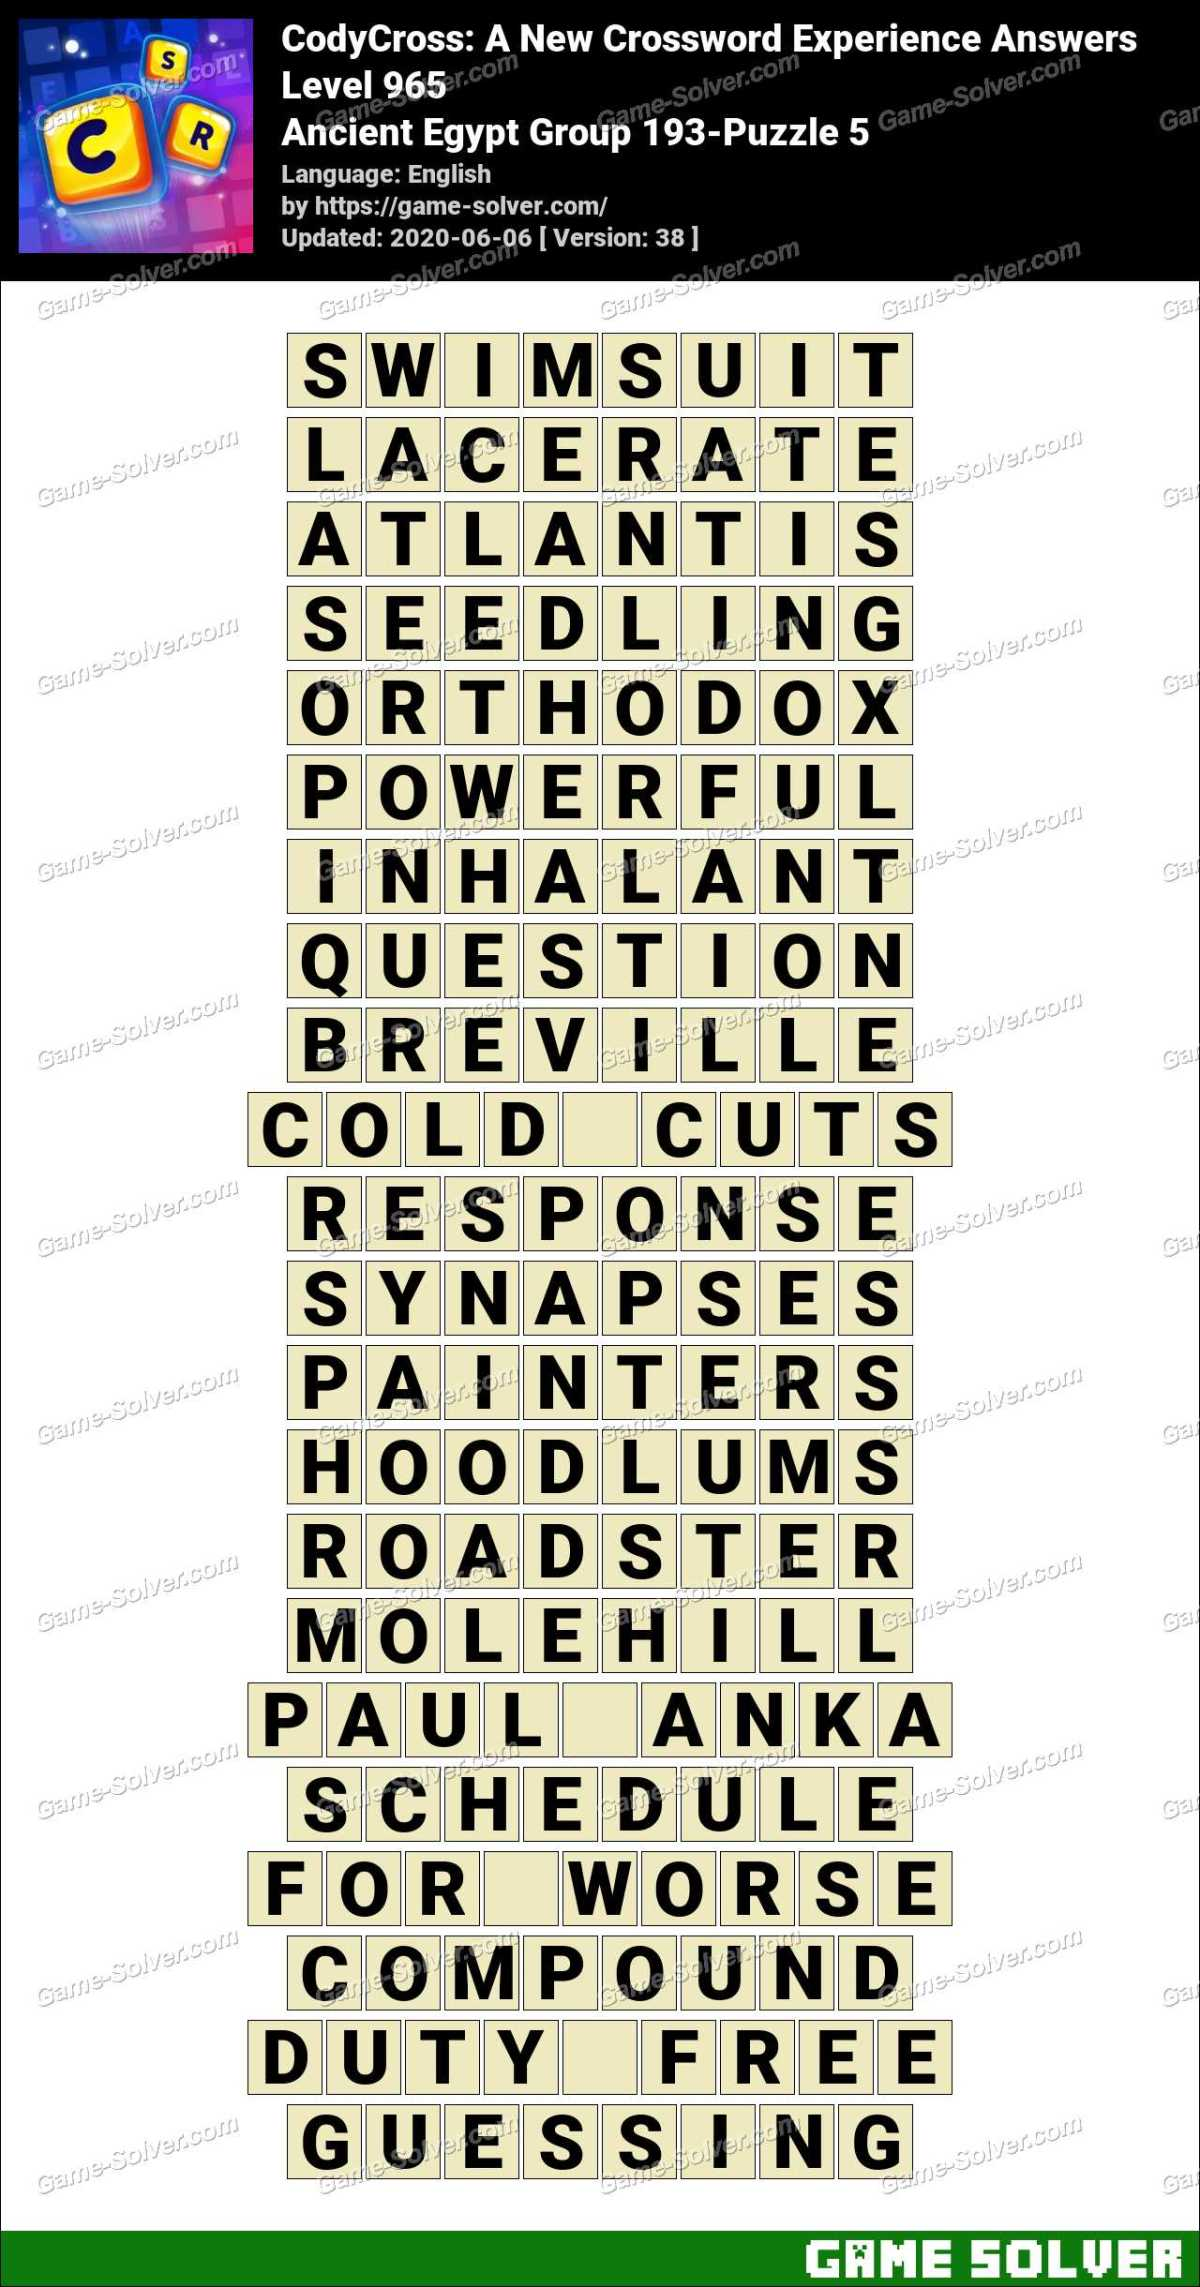 CodyCross Ancient Egypt Group 193-Puzzle 5 Answers